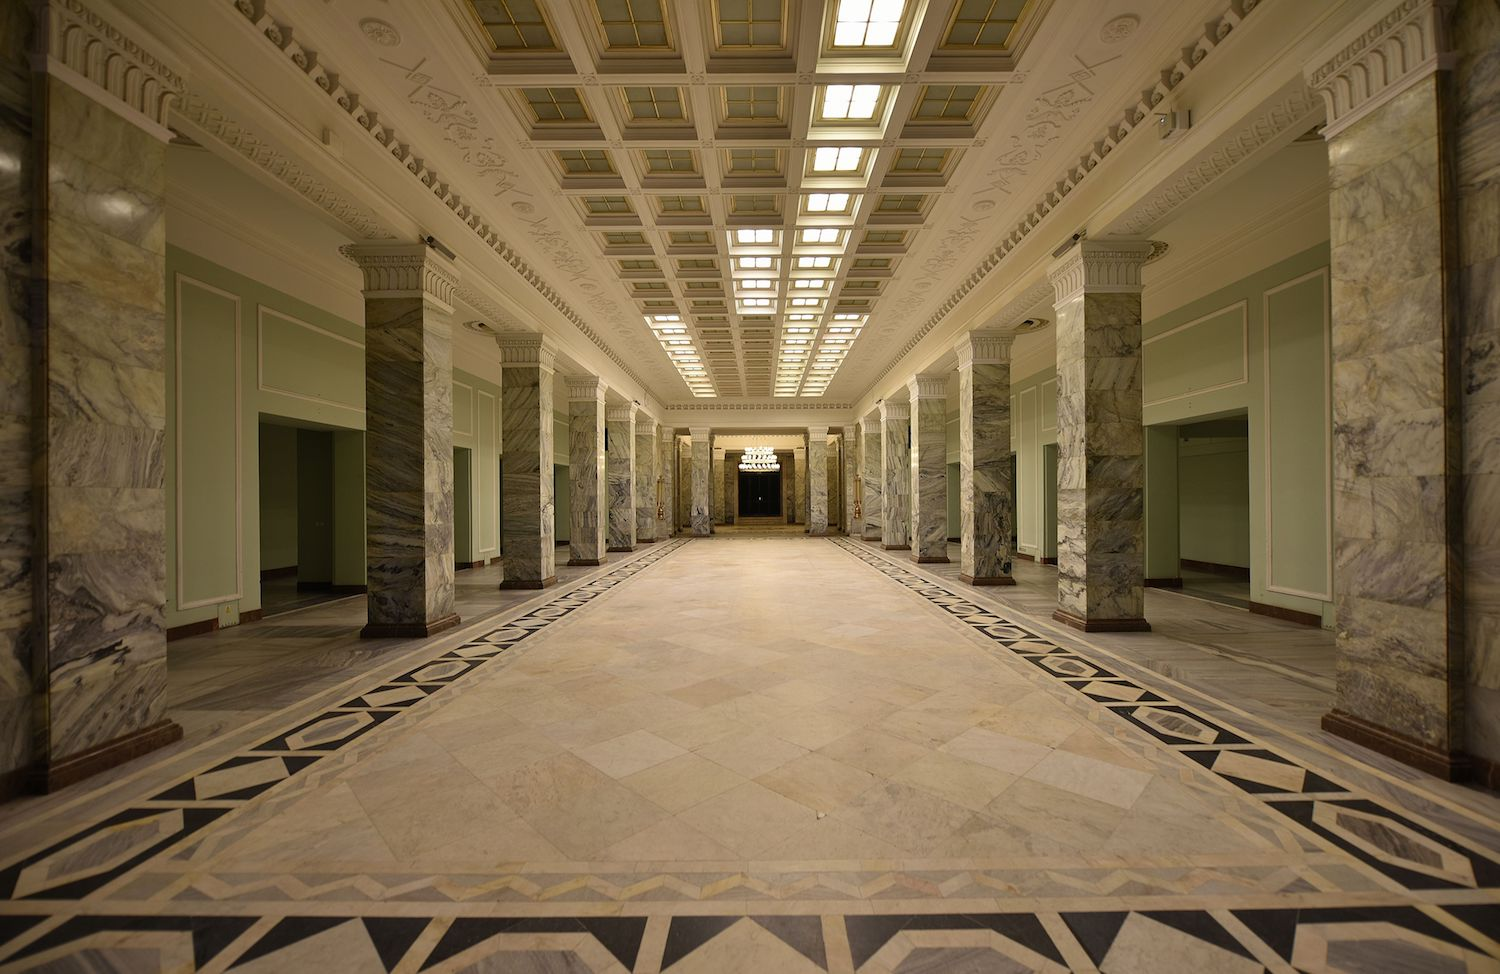 The Marble Hall. Image: Adrian Grycuk under a CC licence